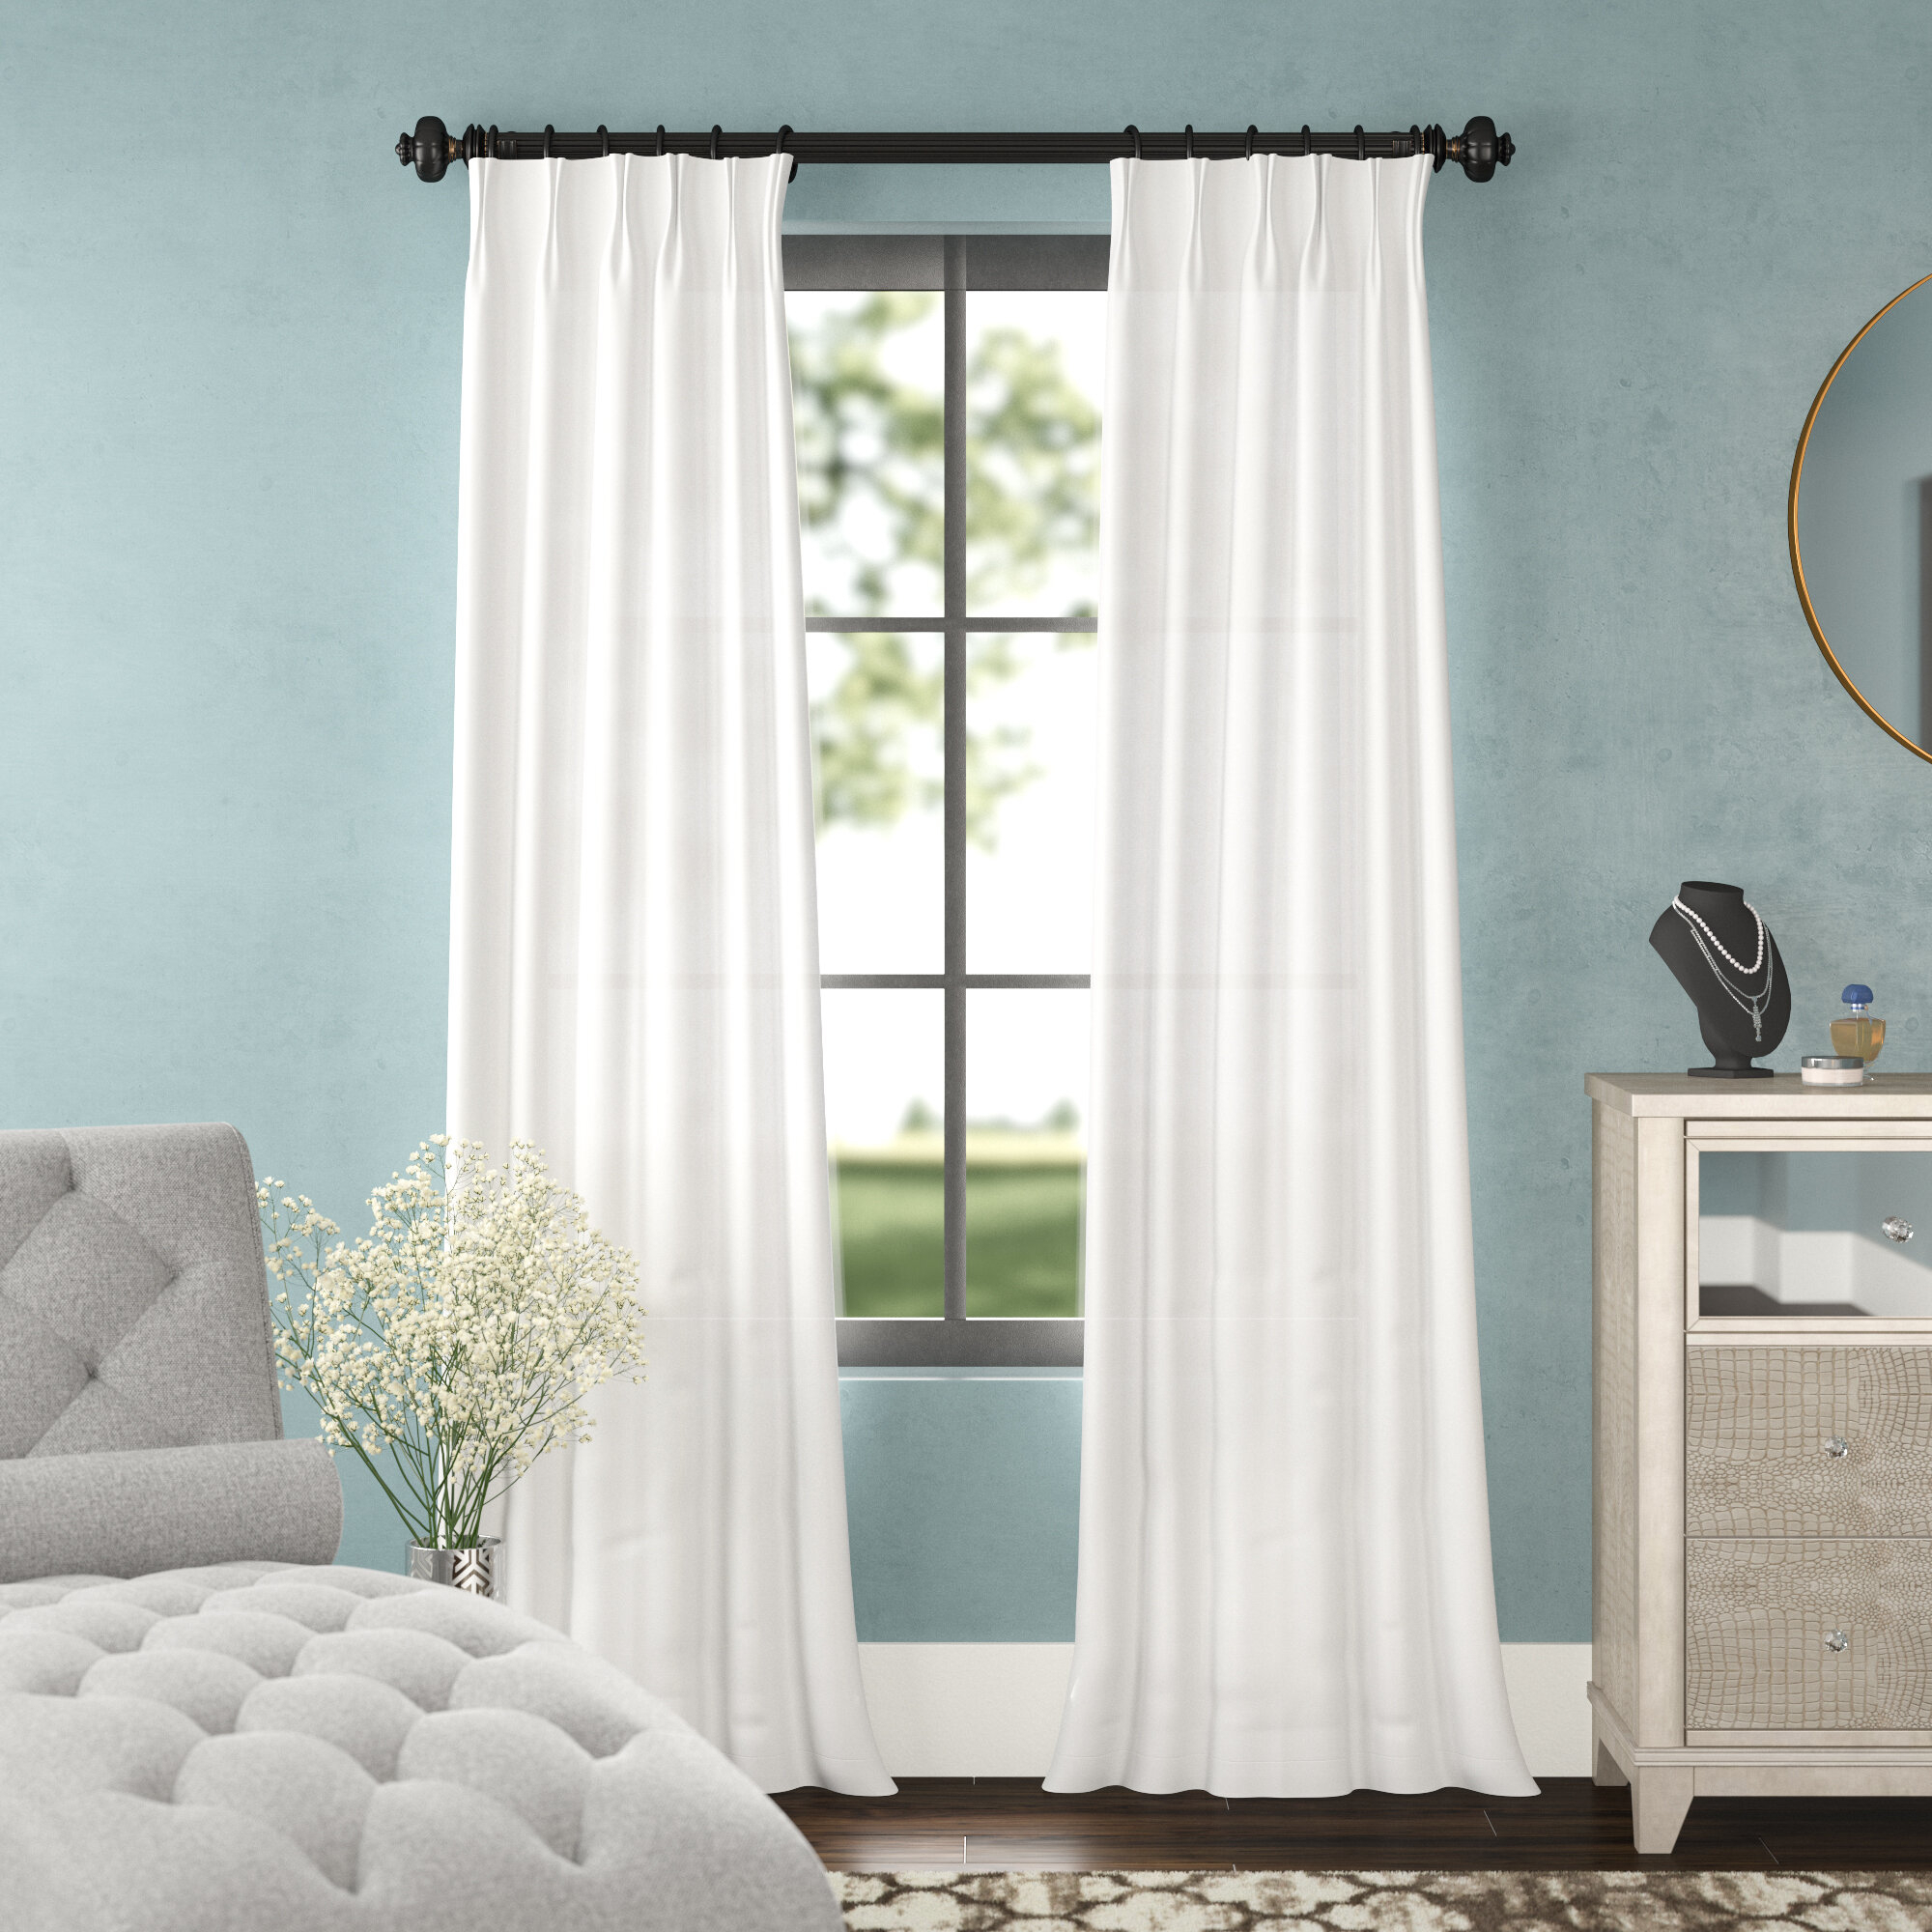 Forbell Solid Blackout Vintage Textured Faux Dupioni Thermal Pinch Pleat Single Curtain Panel Intended For Vintage Faux Textured Dupioni Silk Curtain Panels (View 17 of 30)